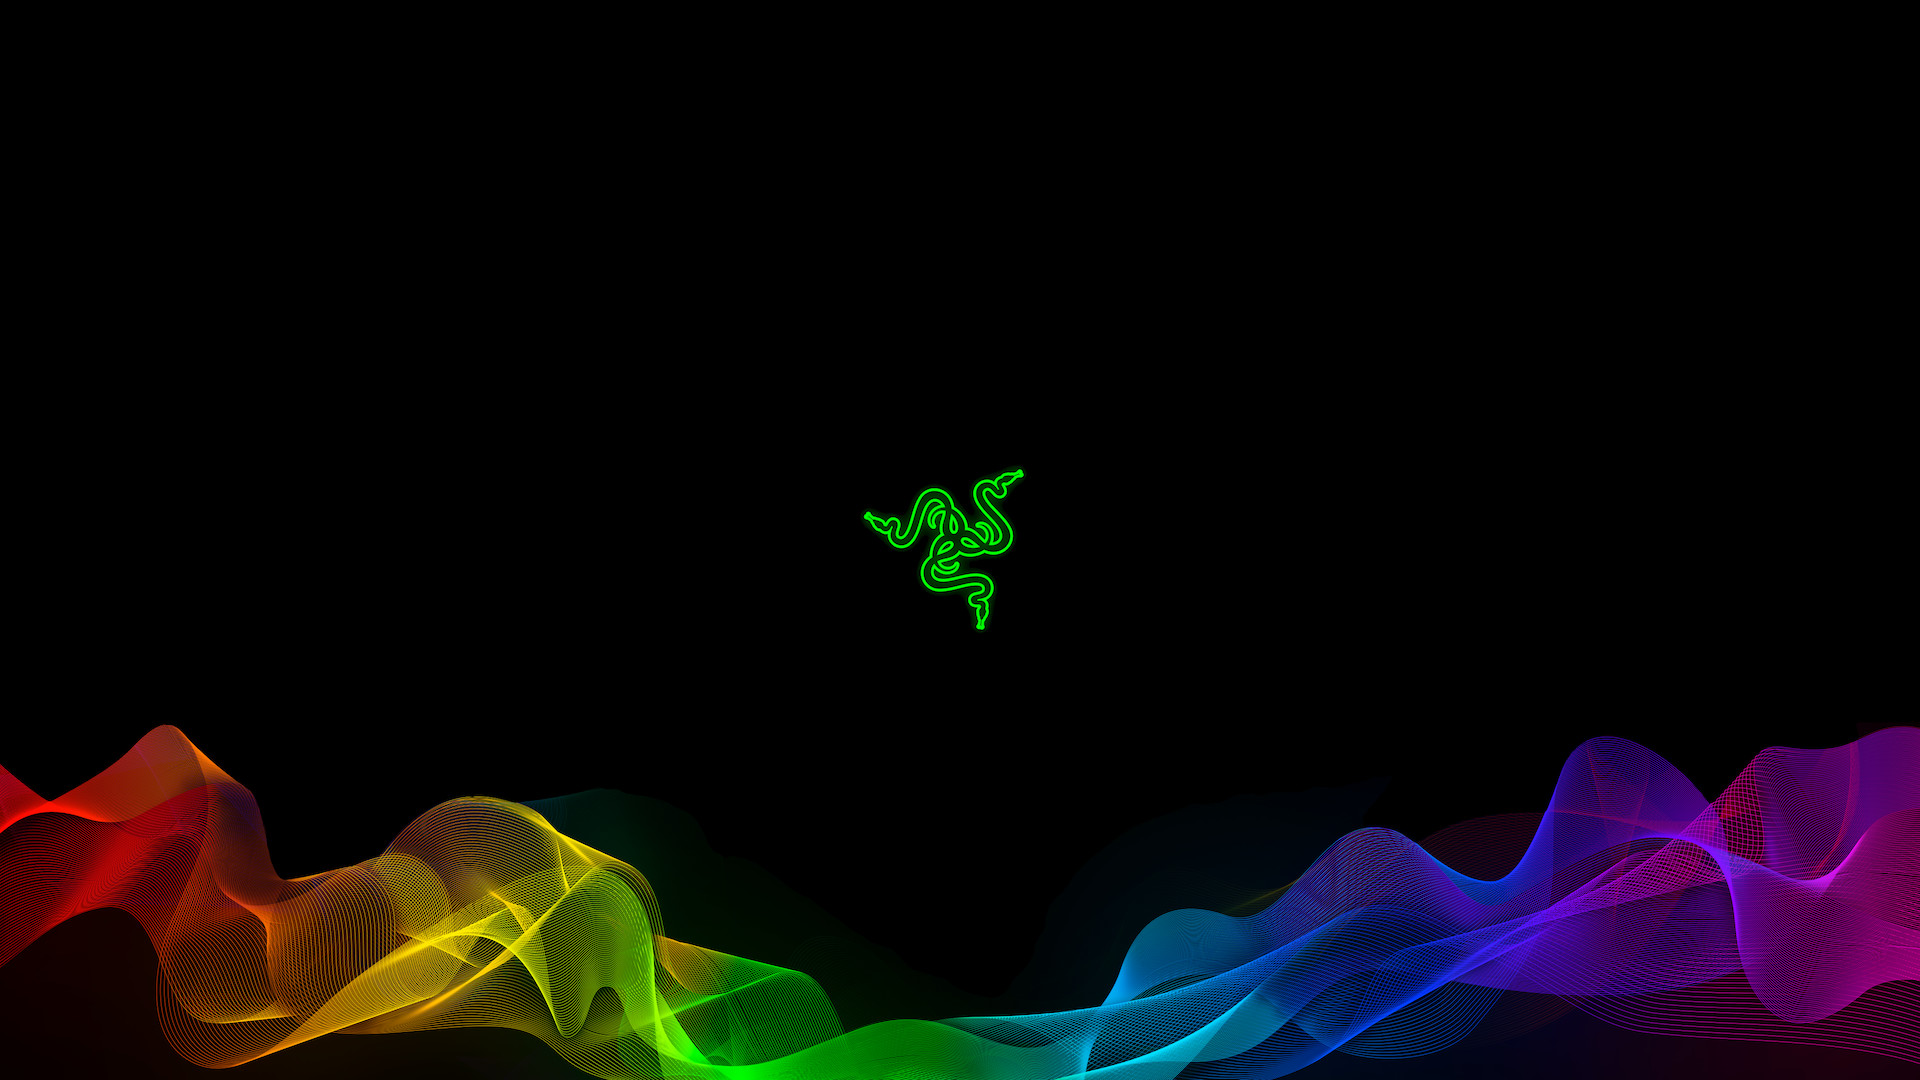 10 New Gaming Wallpaper Hd 1920x1080 Full Hd 1080p For Pc: Razer Wallpaper 1920x1080 HD (92+ Images